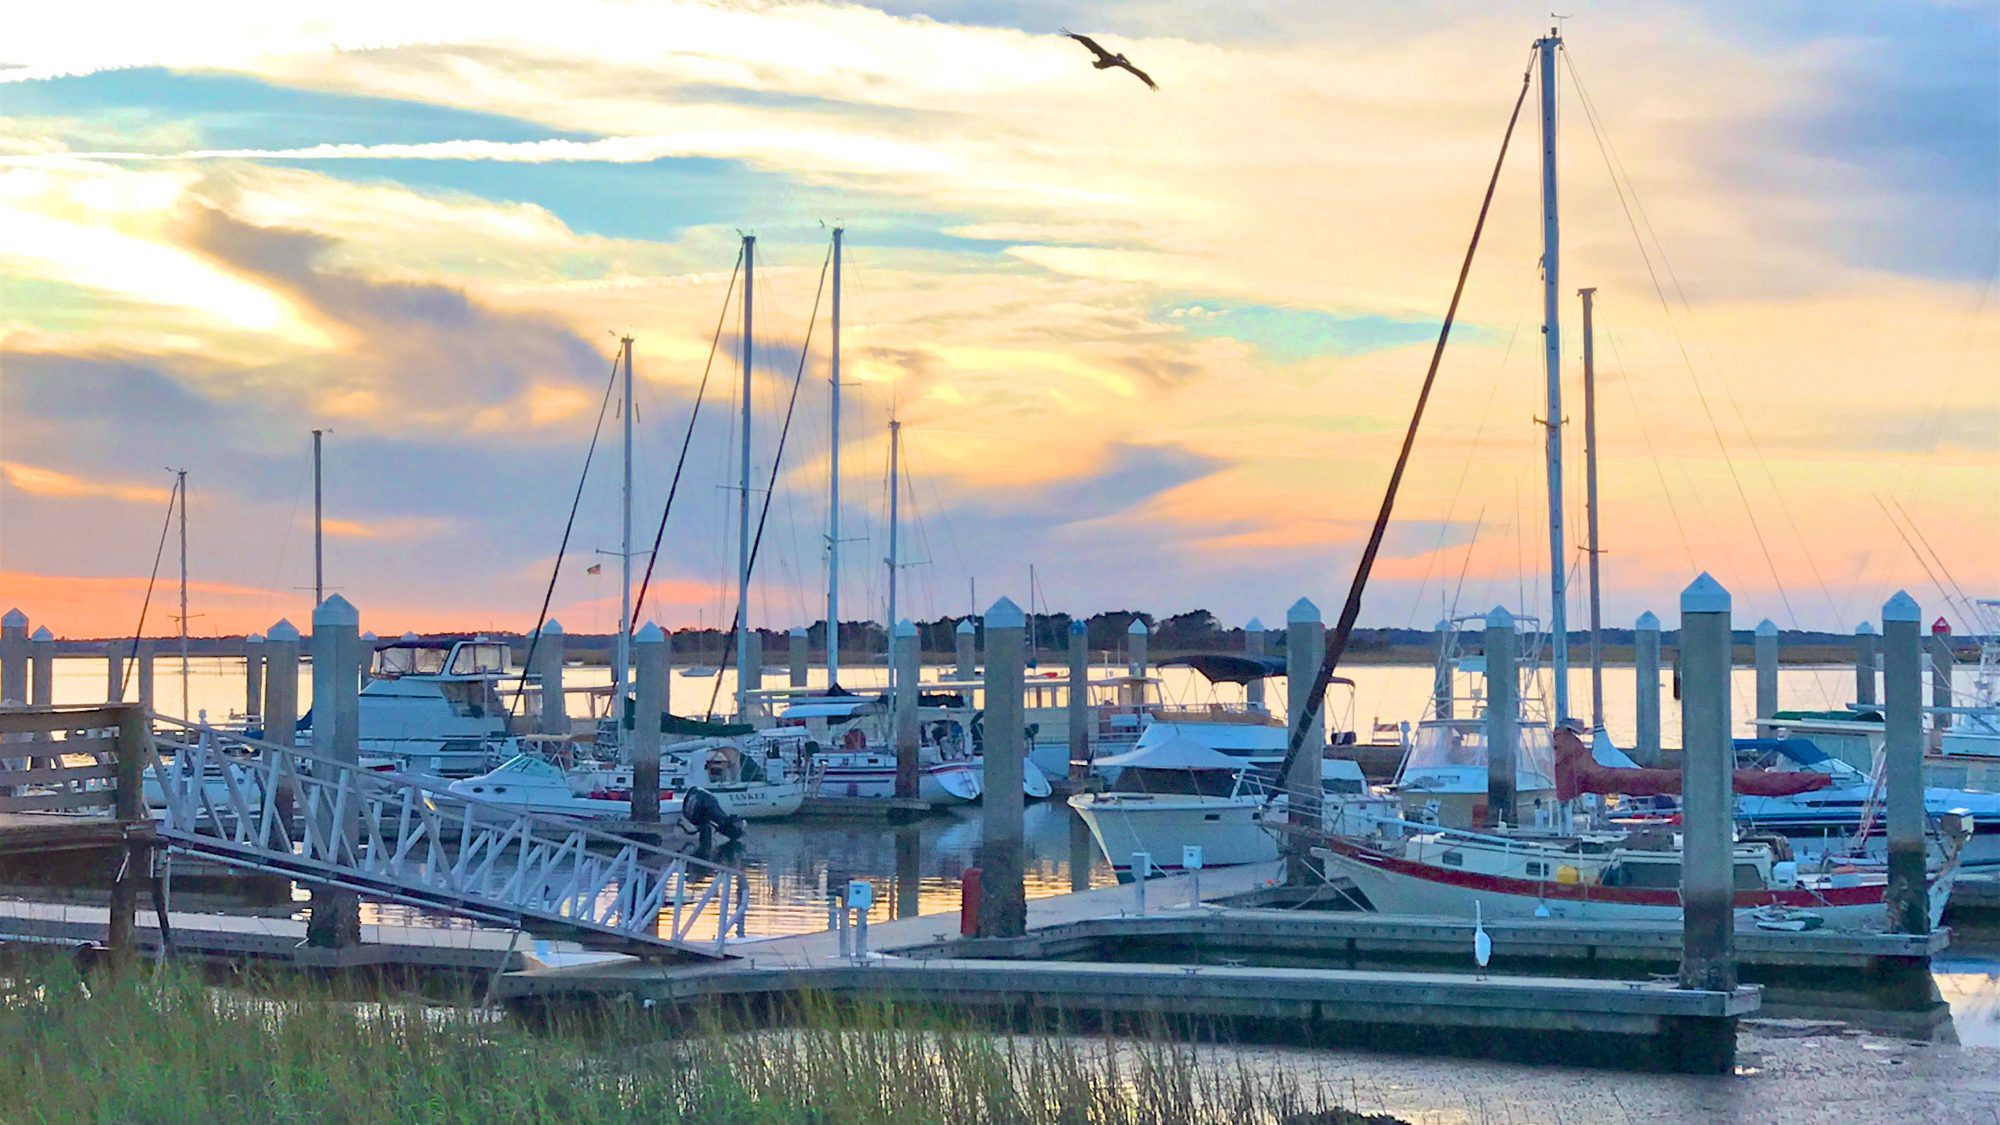 Fernandina Beach harbor